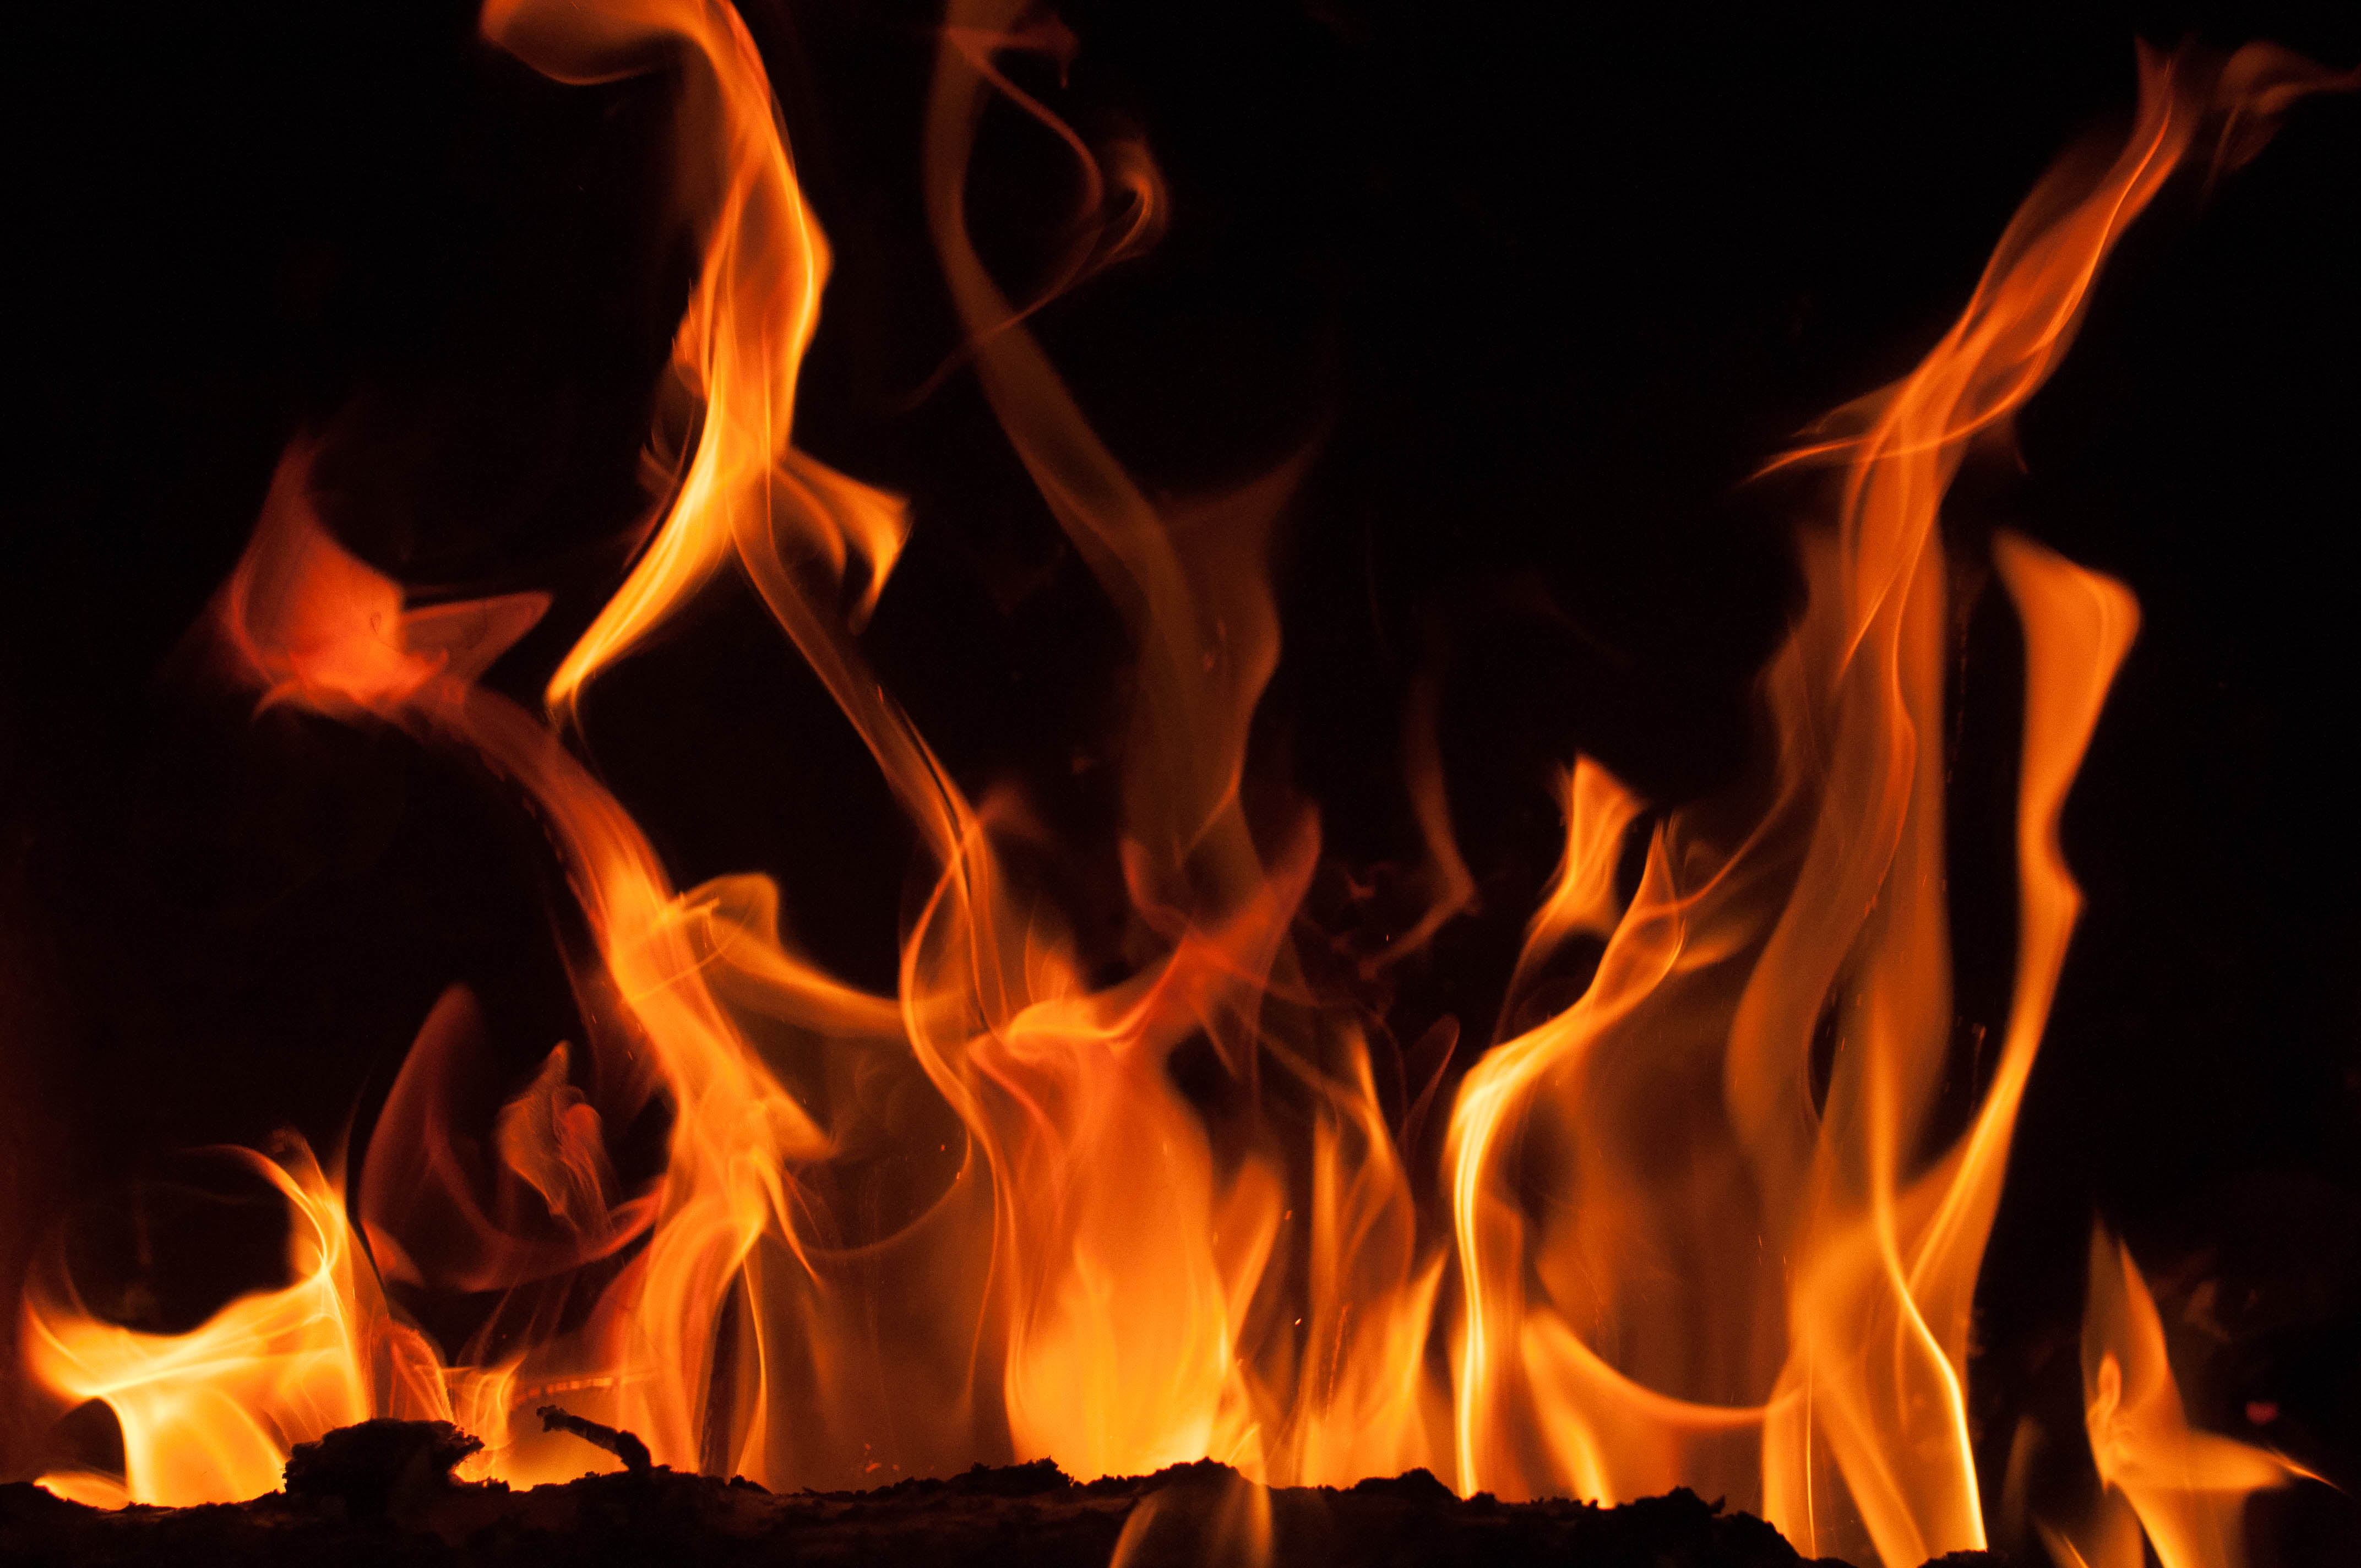 bigstock_115989002_Fire-flames-on-a-black-background.-Blaze-fire ...